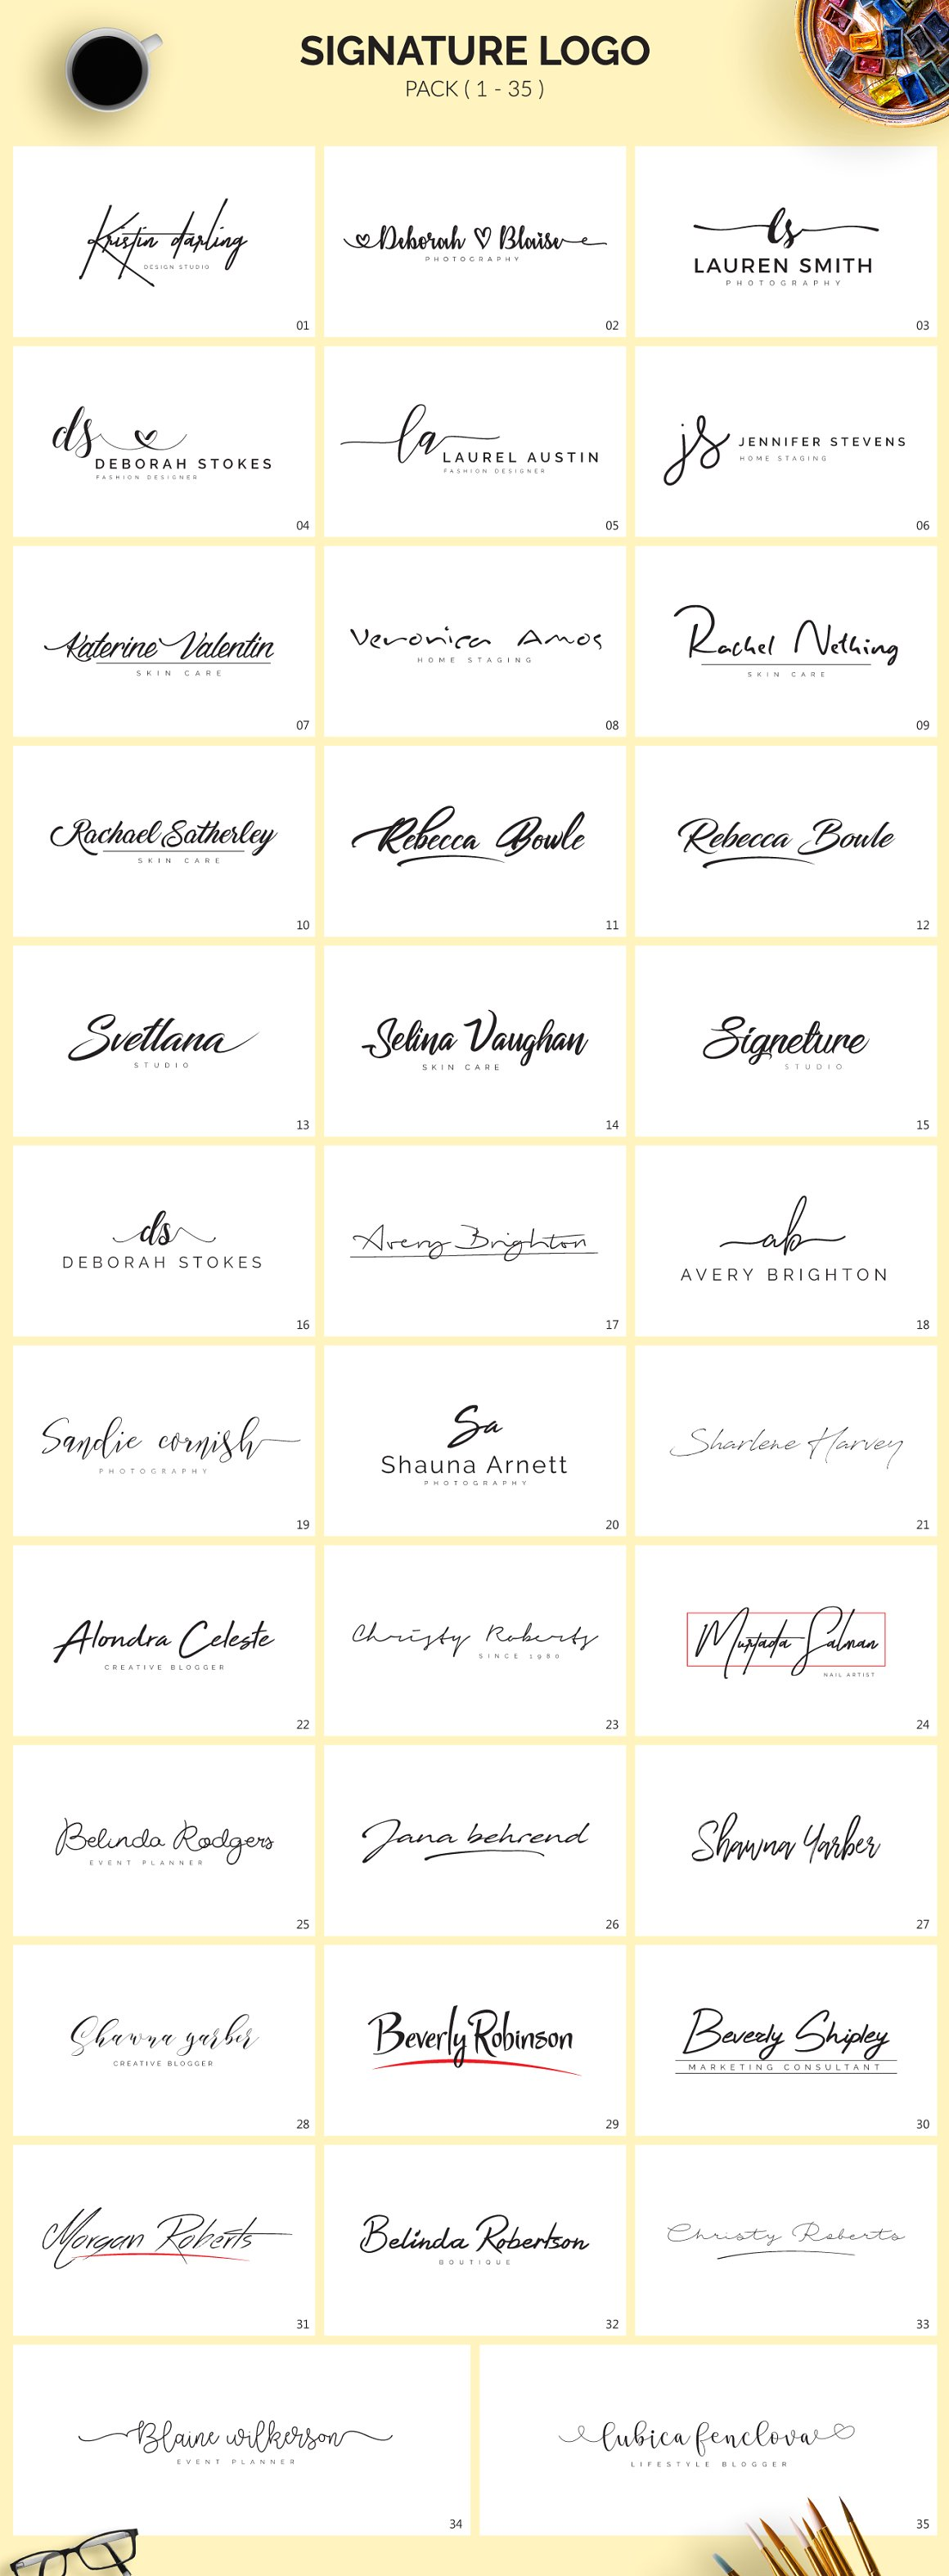 70 Signature Logo Bundle - signature logos 1